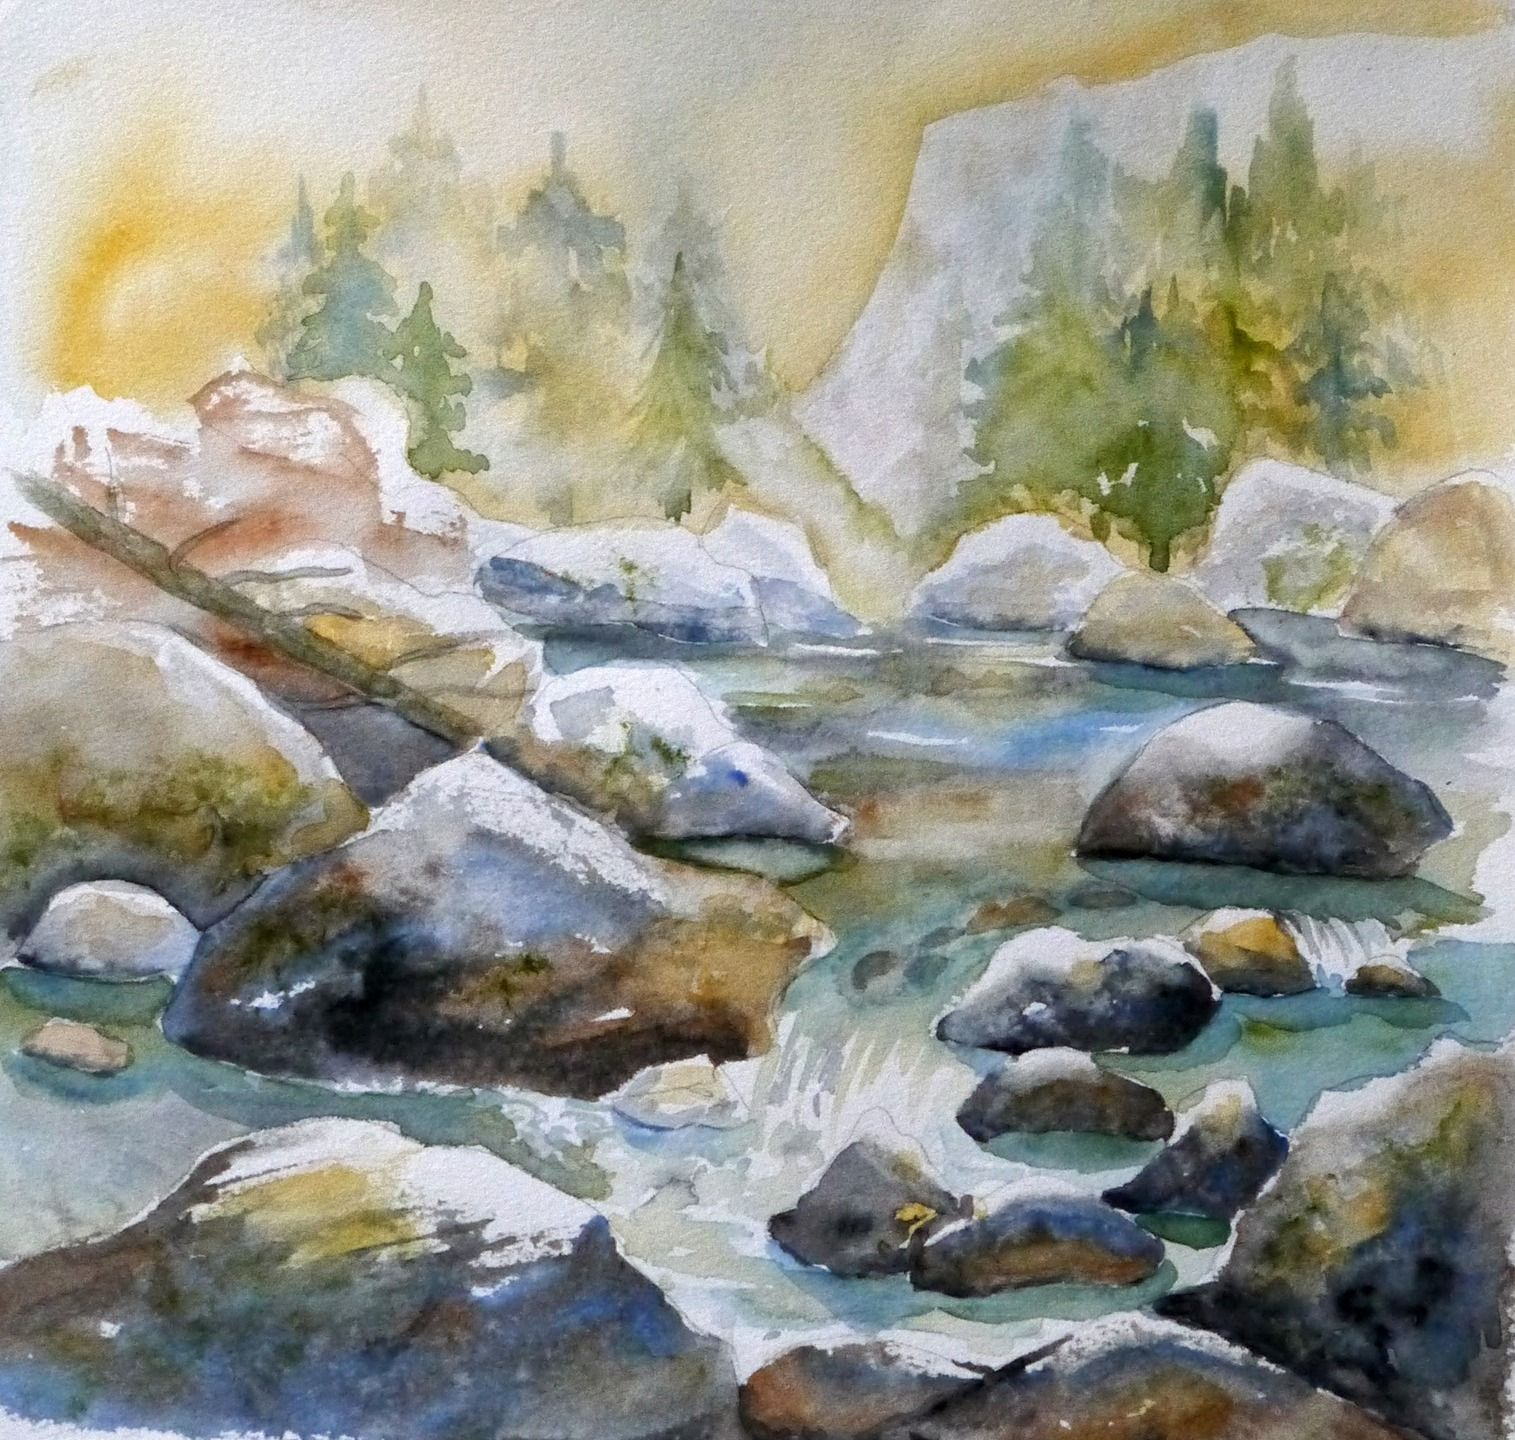 Peinture Contemporaine Of Peinture Contemporaine Tableau Torrent De Montagne